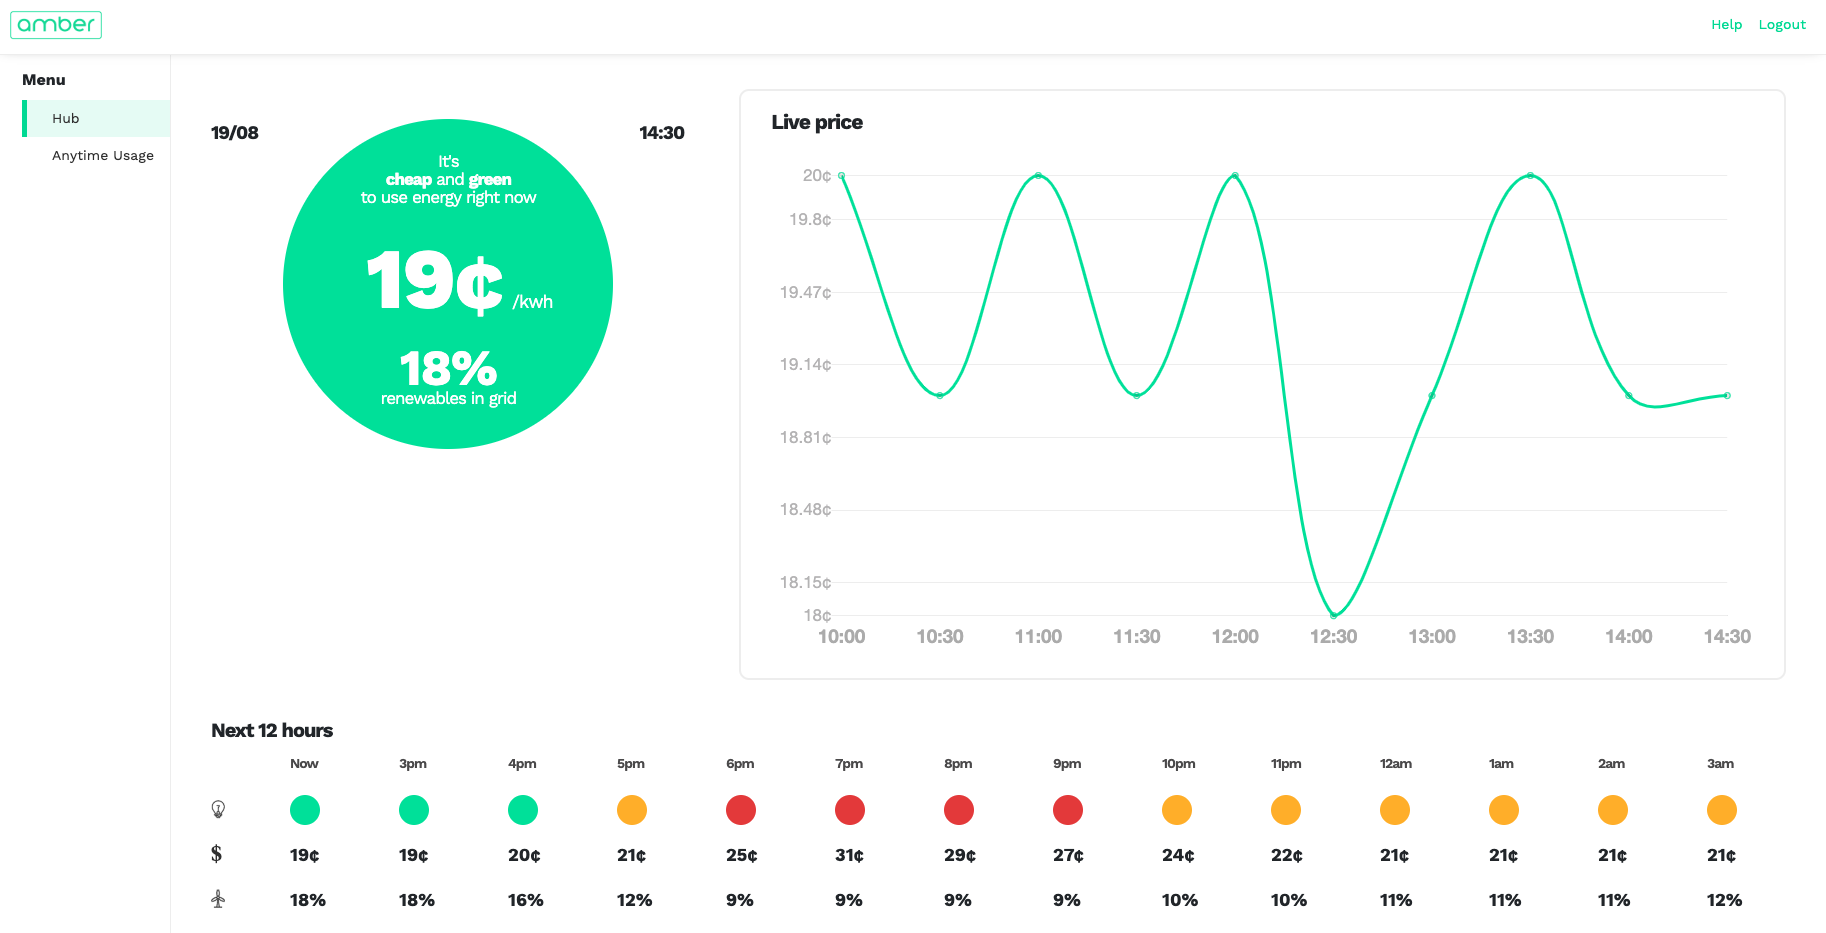 A screenshot from Amber Electric's customer portal, showing real-time & forecast spot market prices and renewable energy percentage mixes for each half-hourly settlement period on the National Electricity Market (NEM).